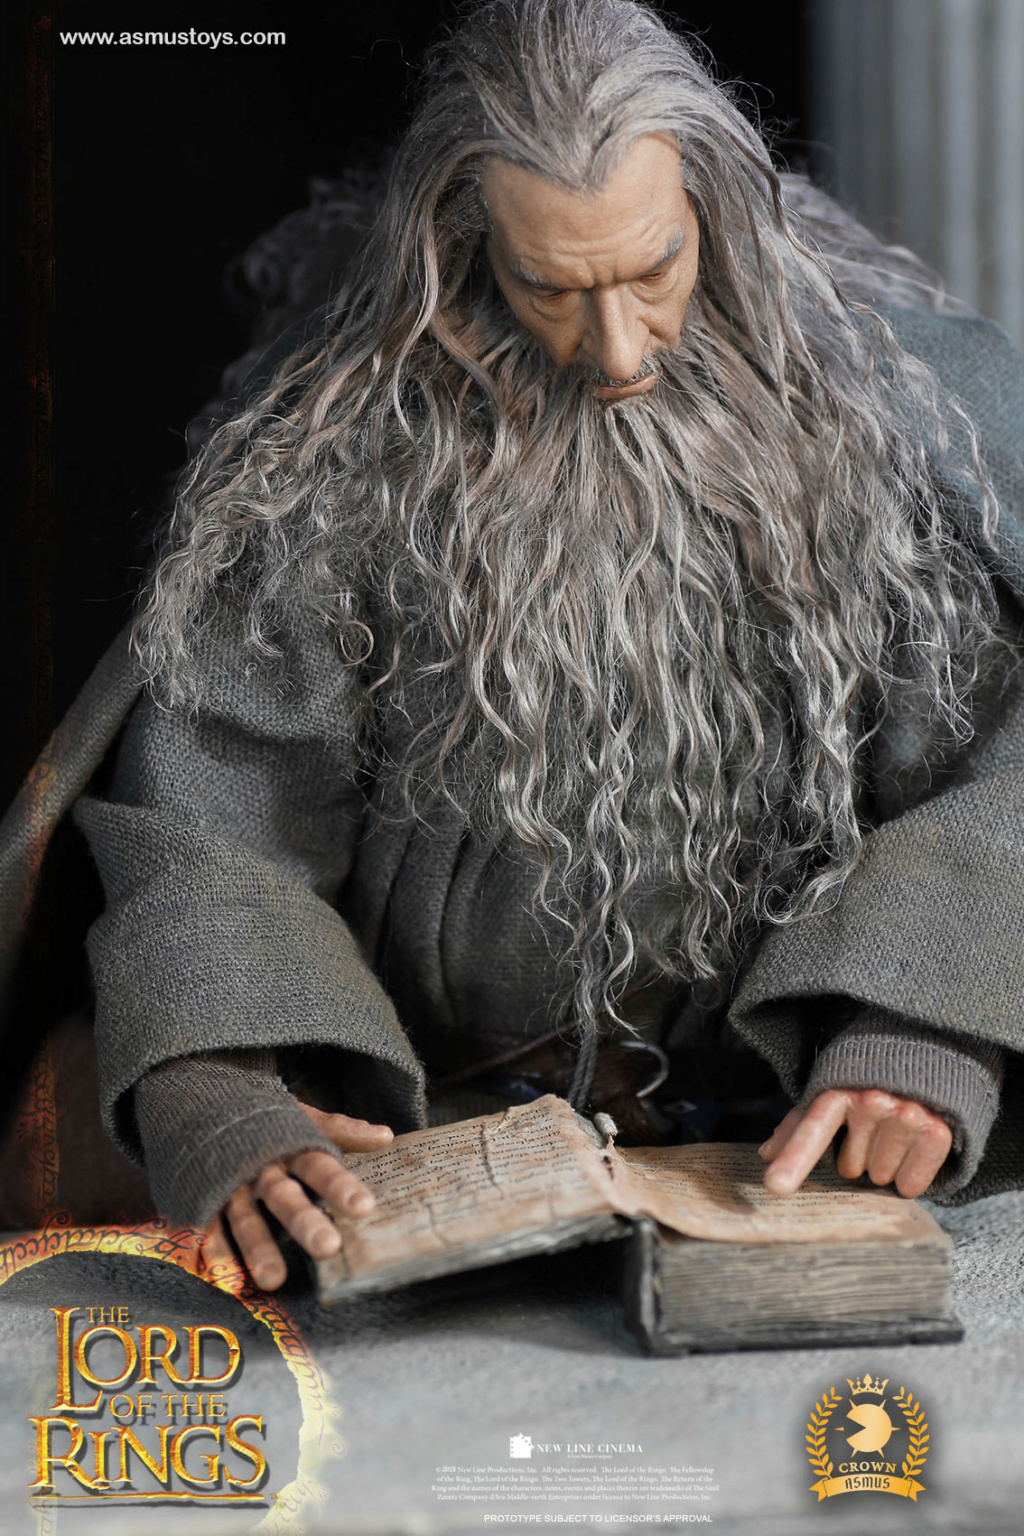 NEW PRODUCT: ASMUS TOYS THE CROWN SERIES : GANDALF THE GREY 1/6 figure 2357